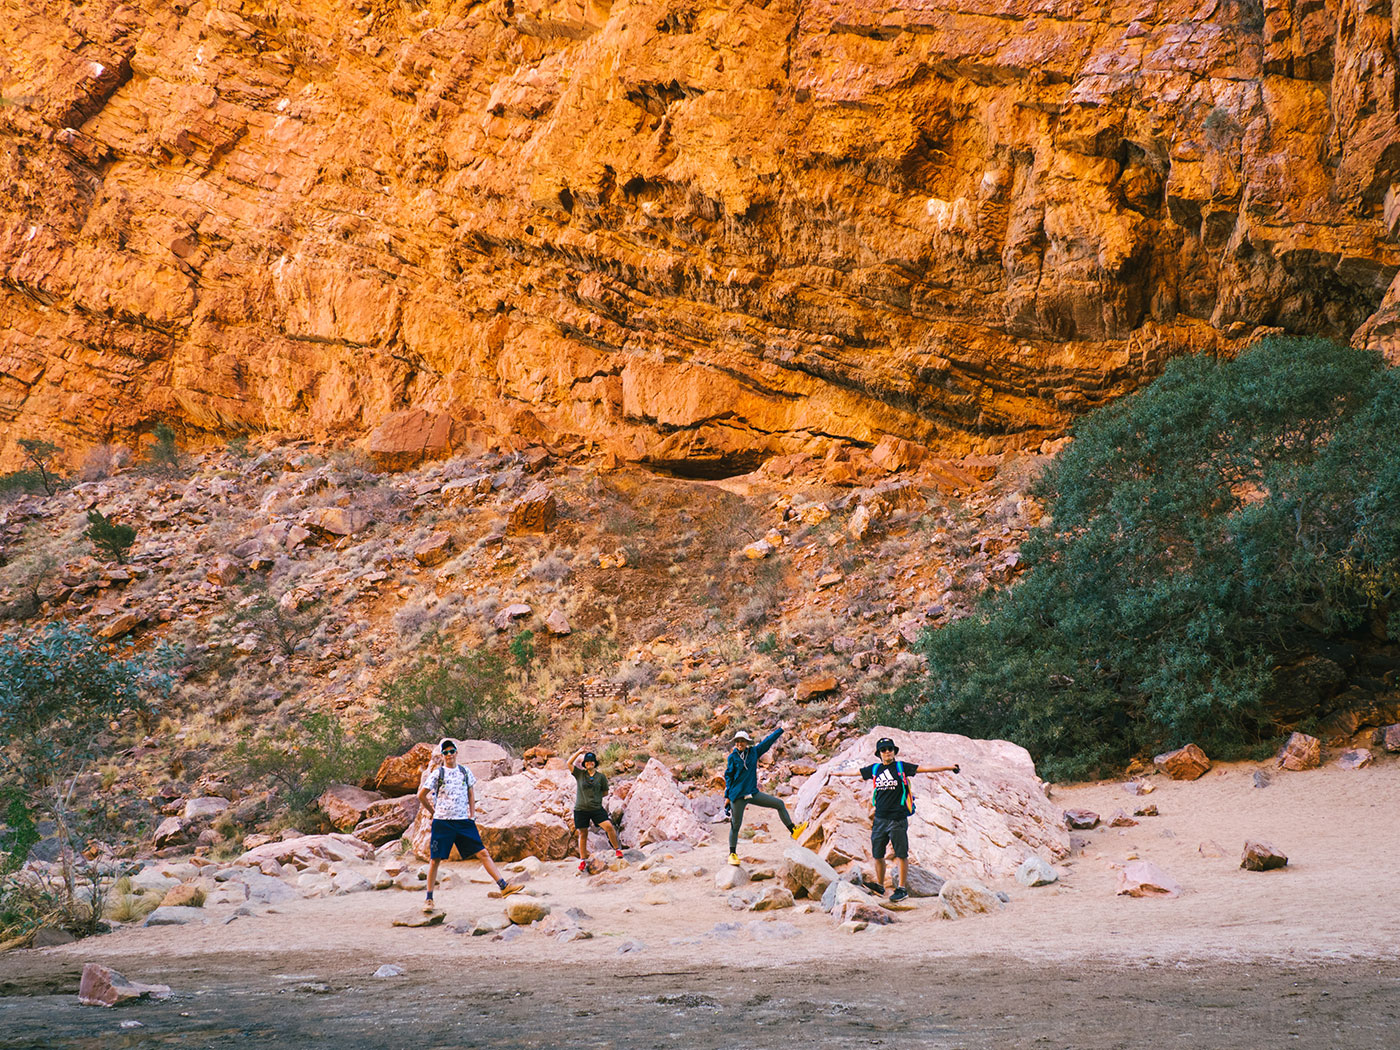 Our postcard shot at Simpsons gap